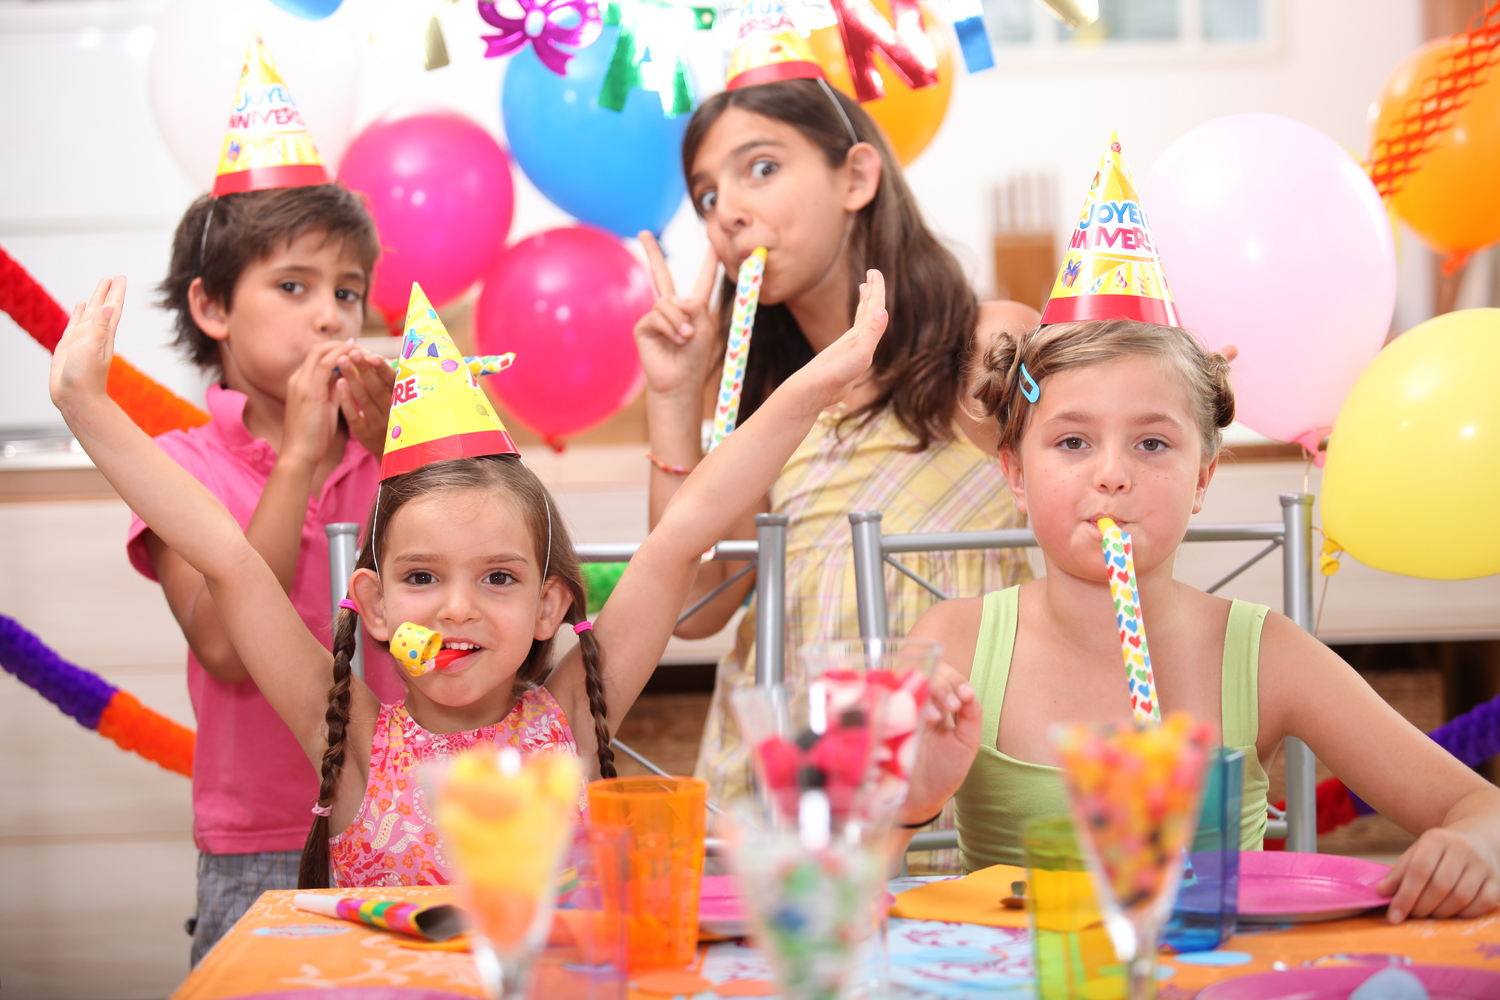 Bowling Birthday Parties And More Fun Ideas Providence RI North Bowl